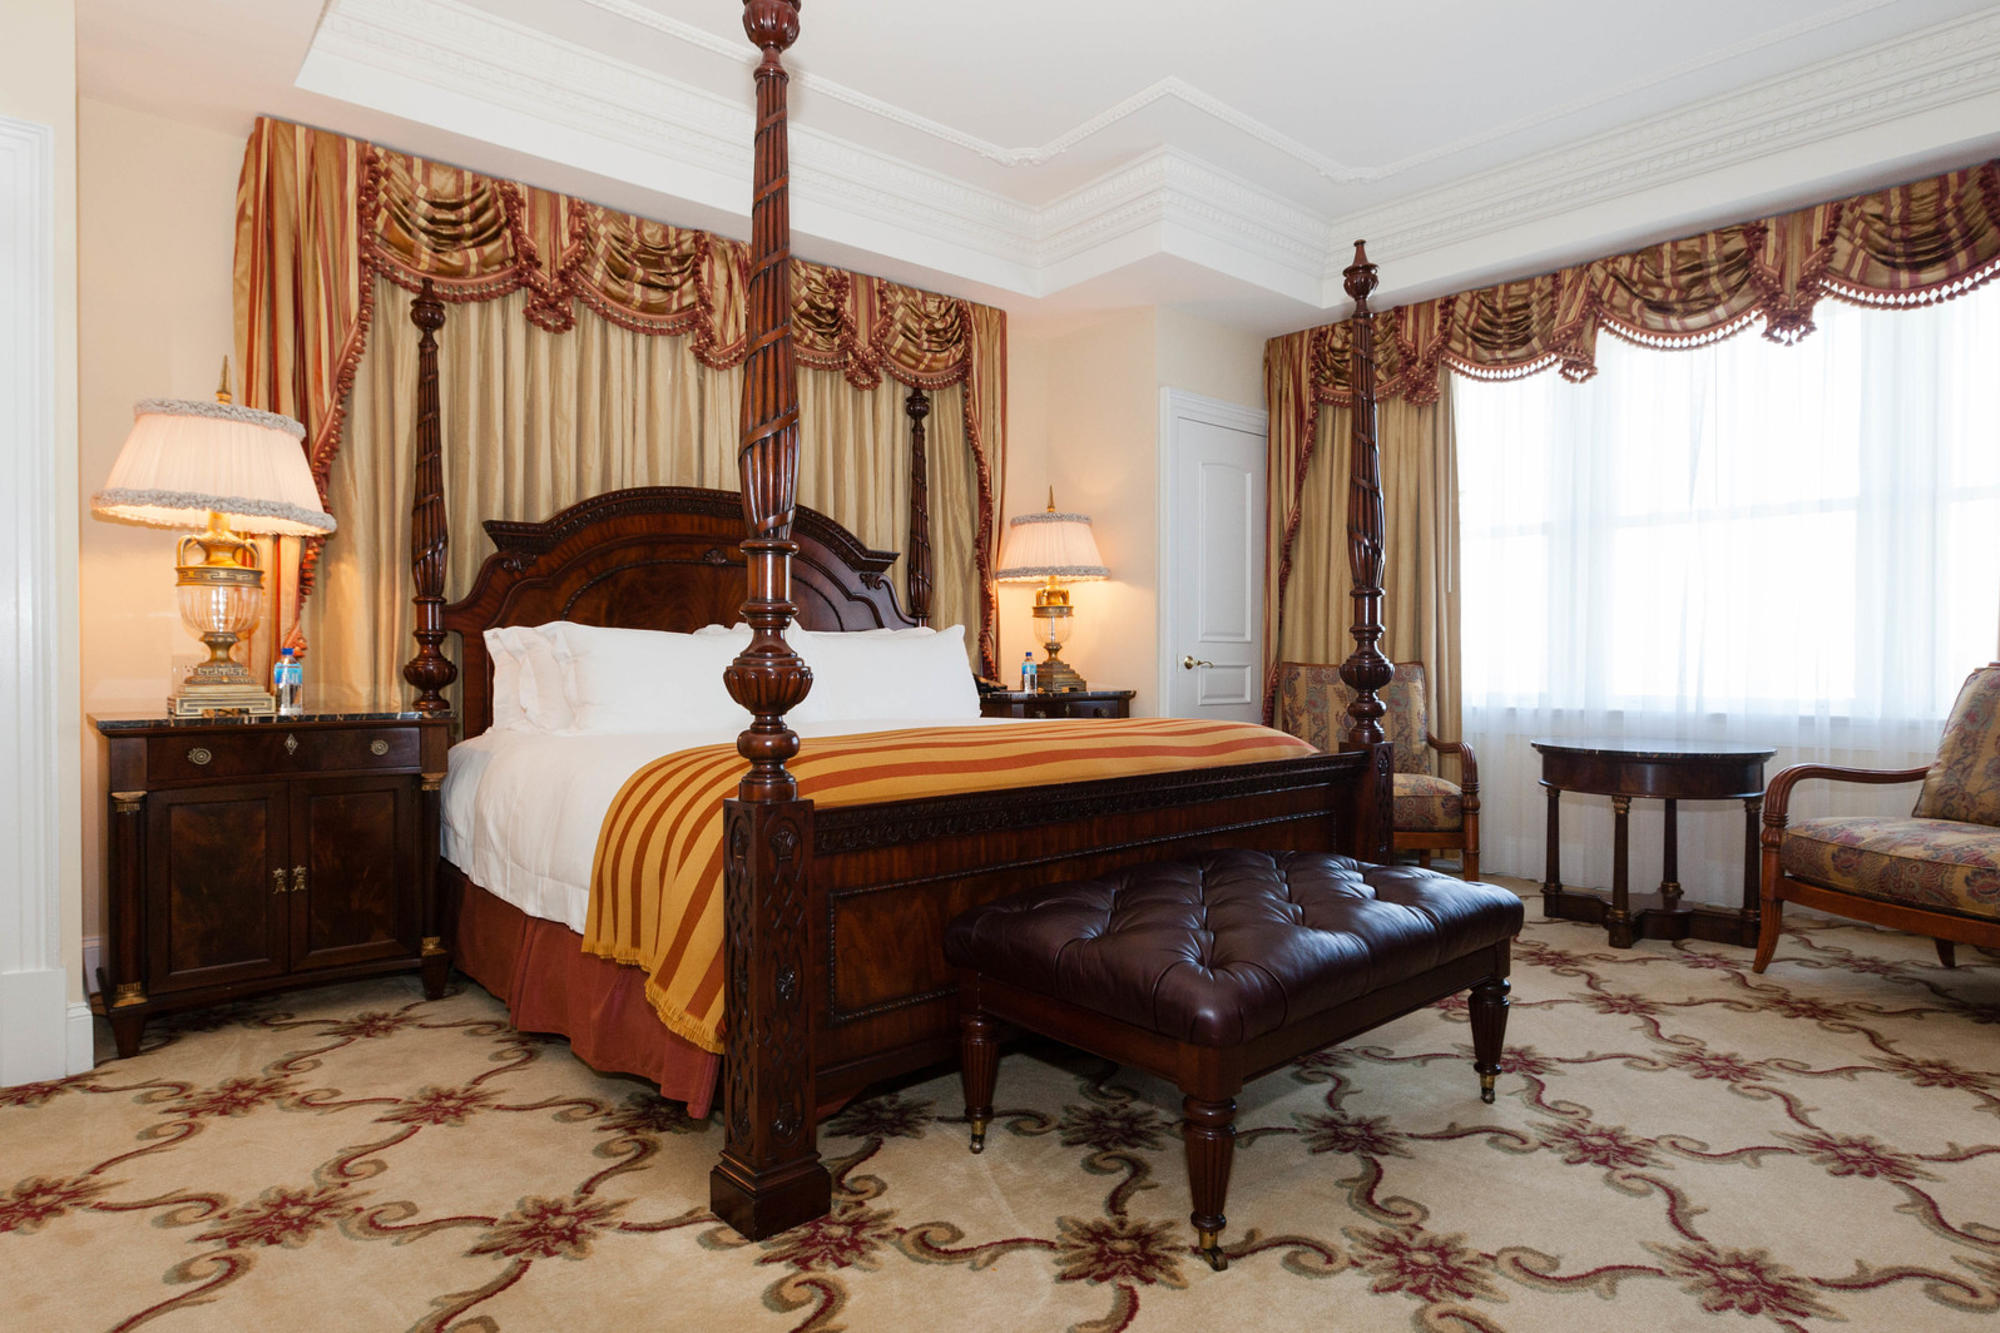 A suite at the Market Pavilion Hotel in Charleston, South Carolina